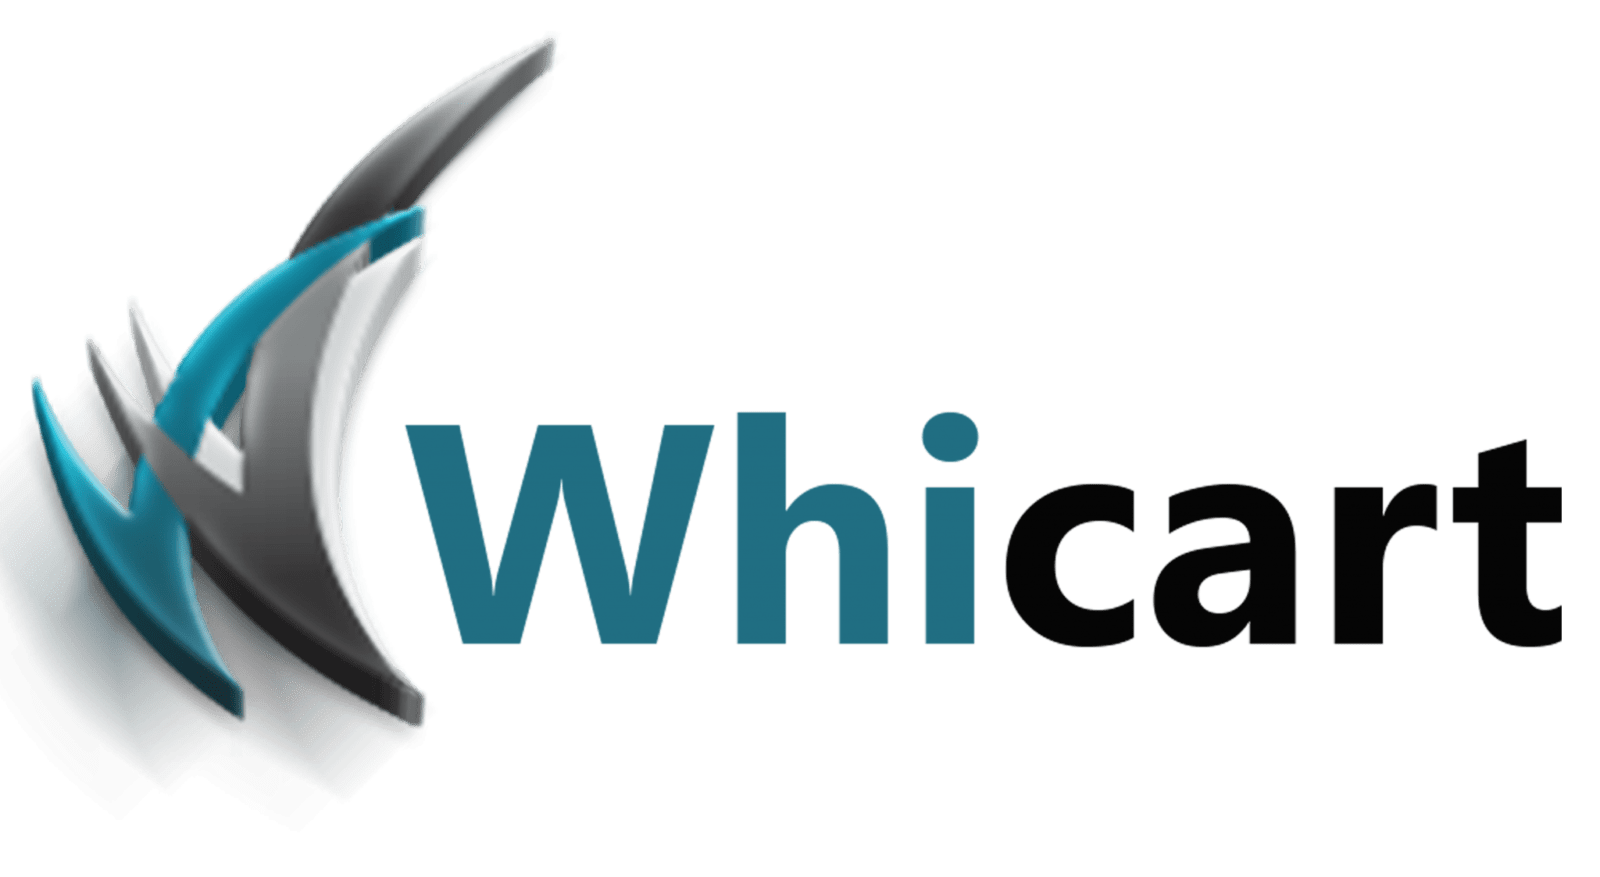 🥇 Whicart.Com – Best Range Hood And Kitchen Appliances Reviews And Ratings